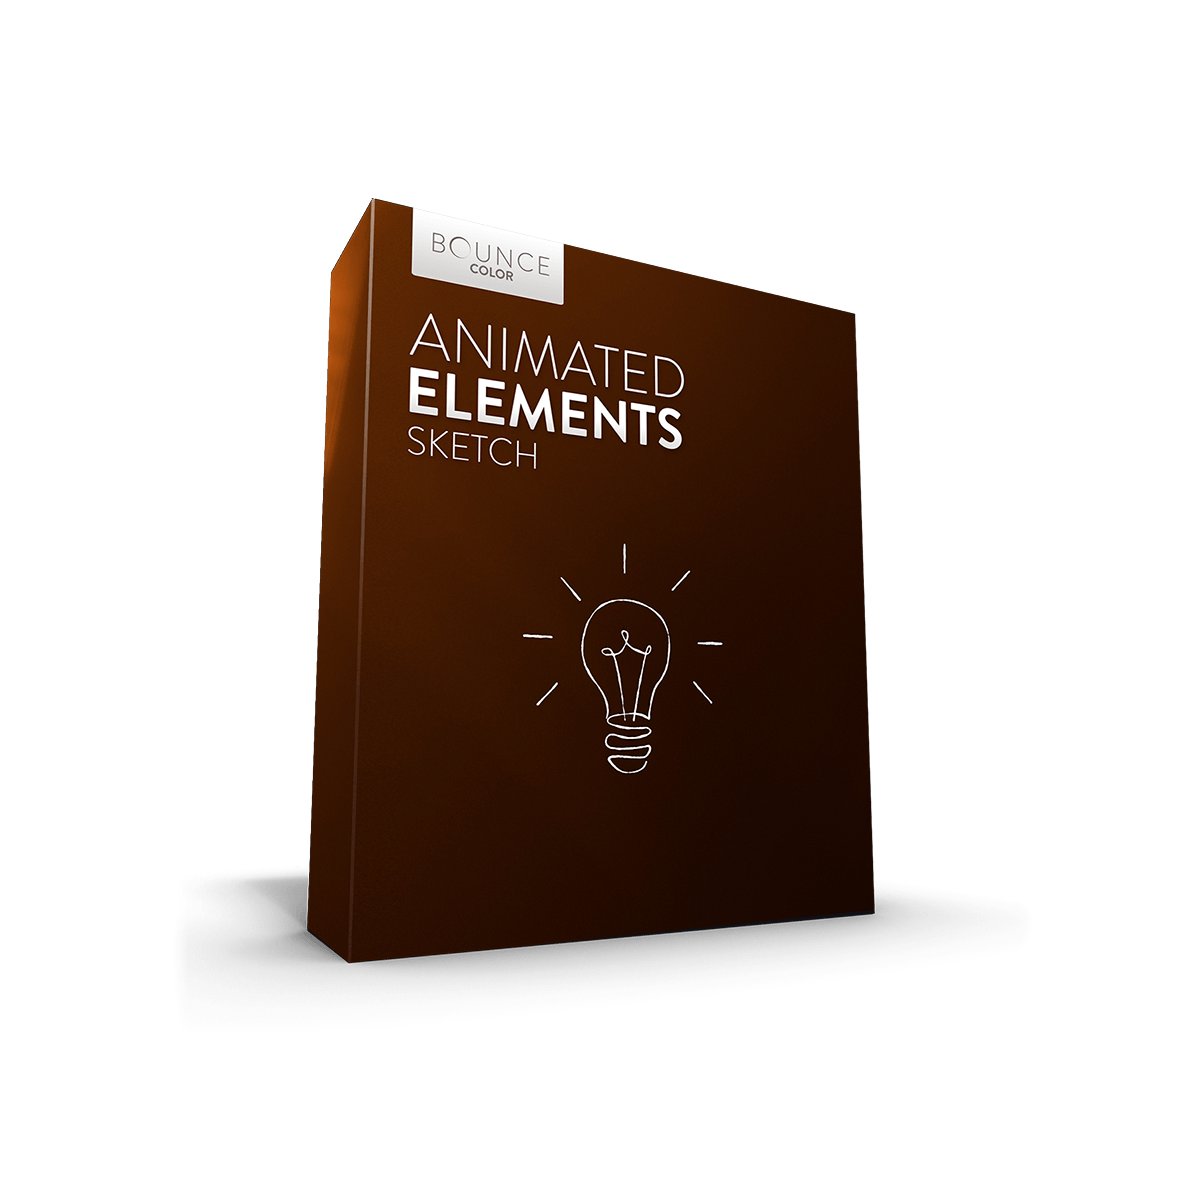 animated elements sketch drawing